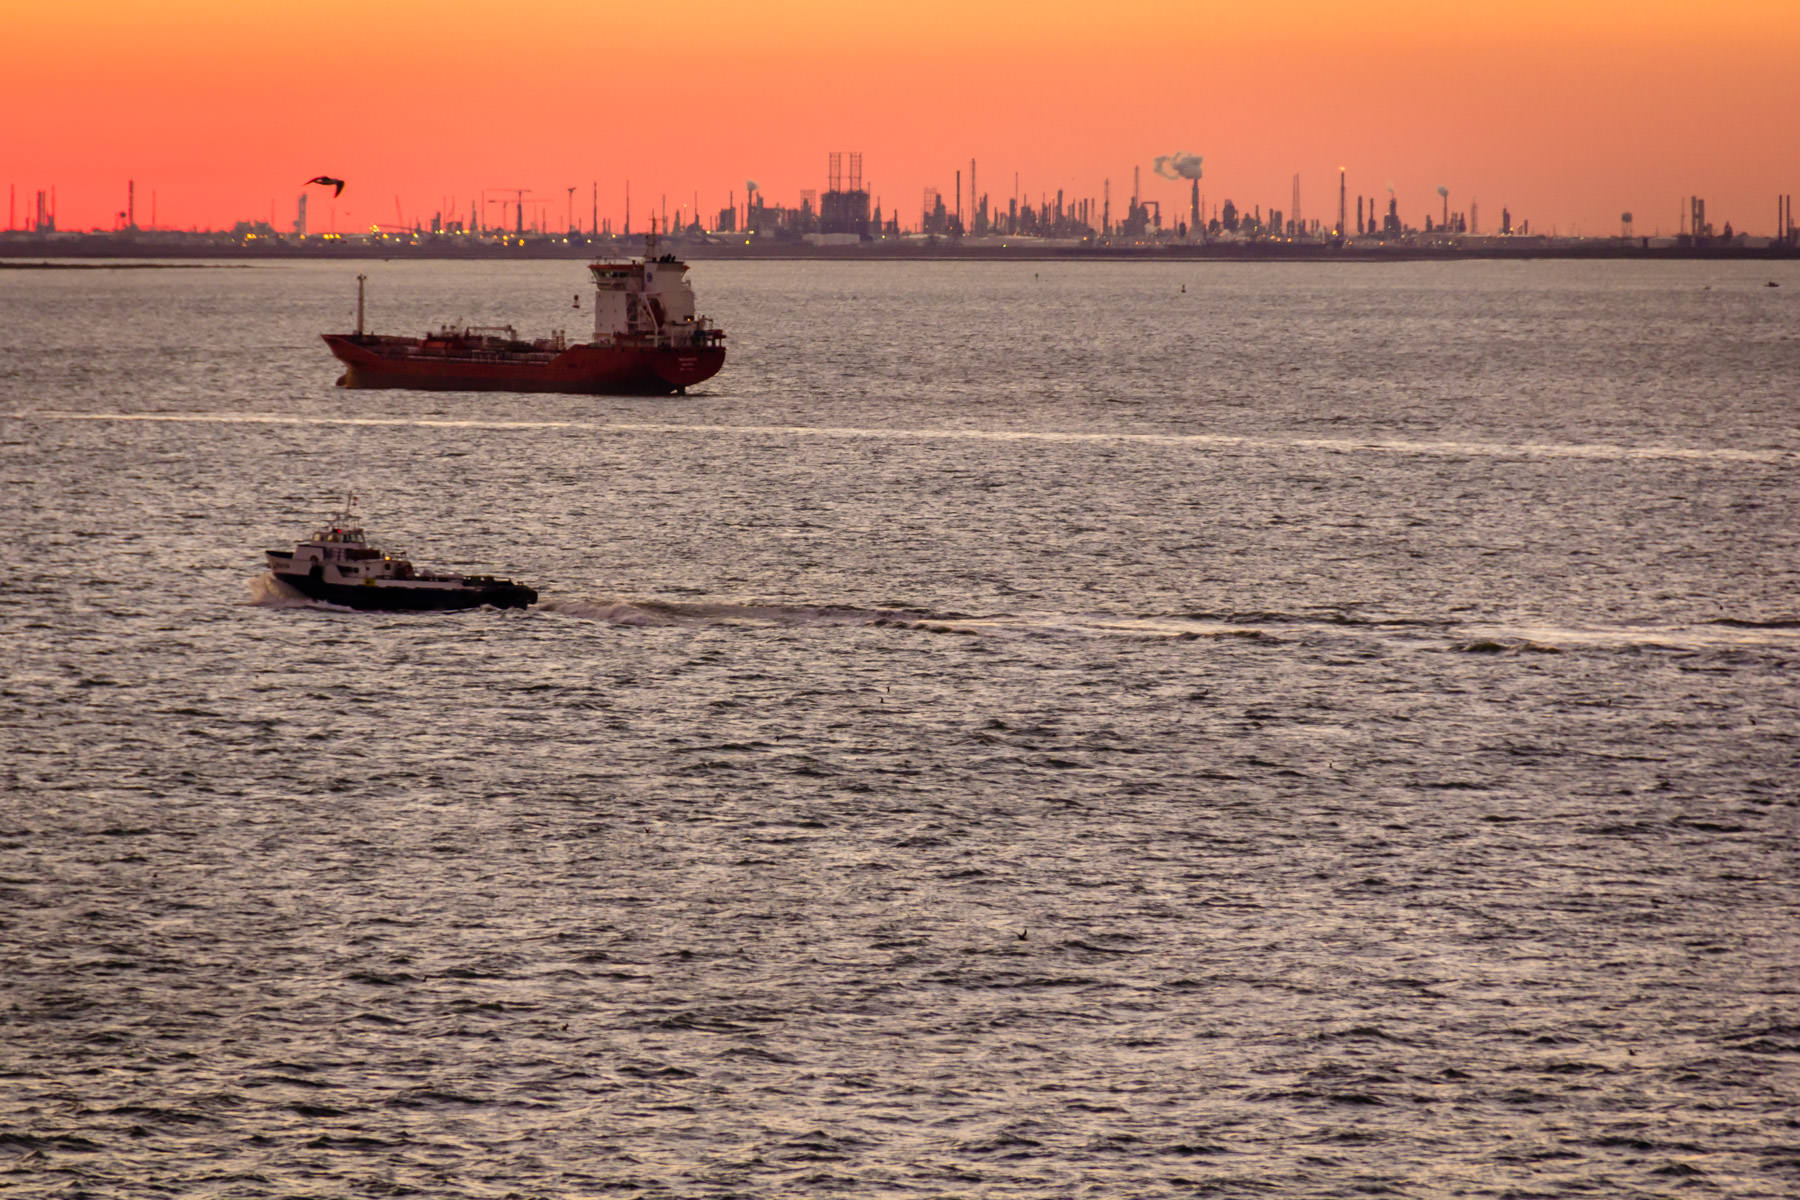 The sun sets behind the refineries of Texas City on the shoreline of Galveston Bay.